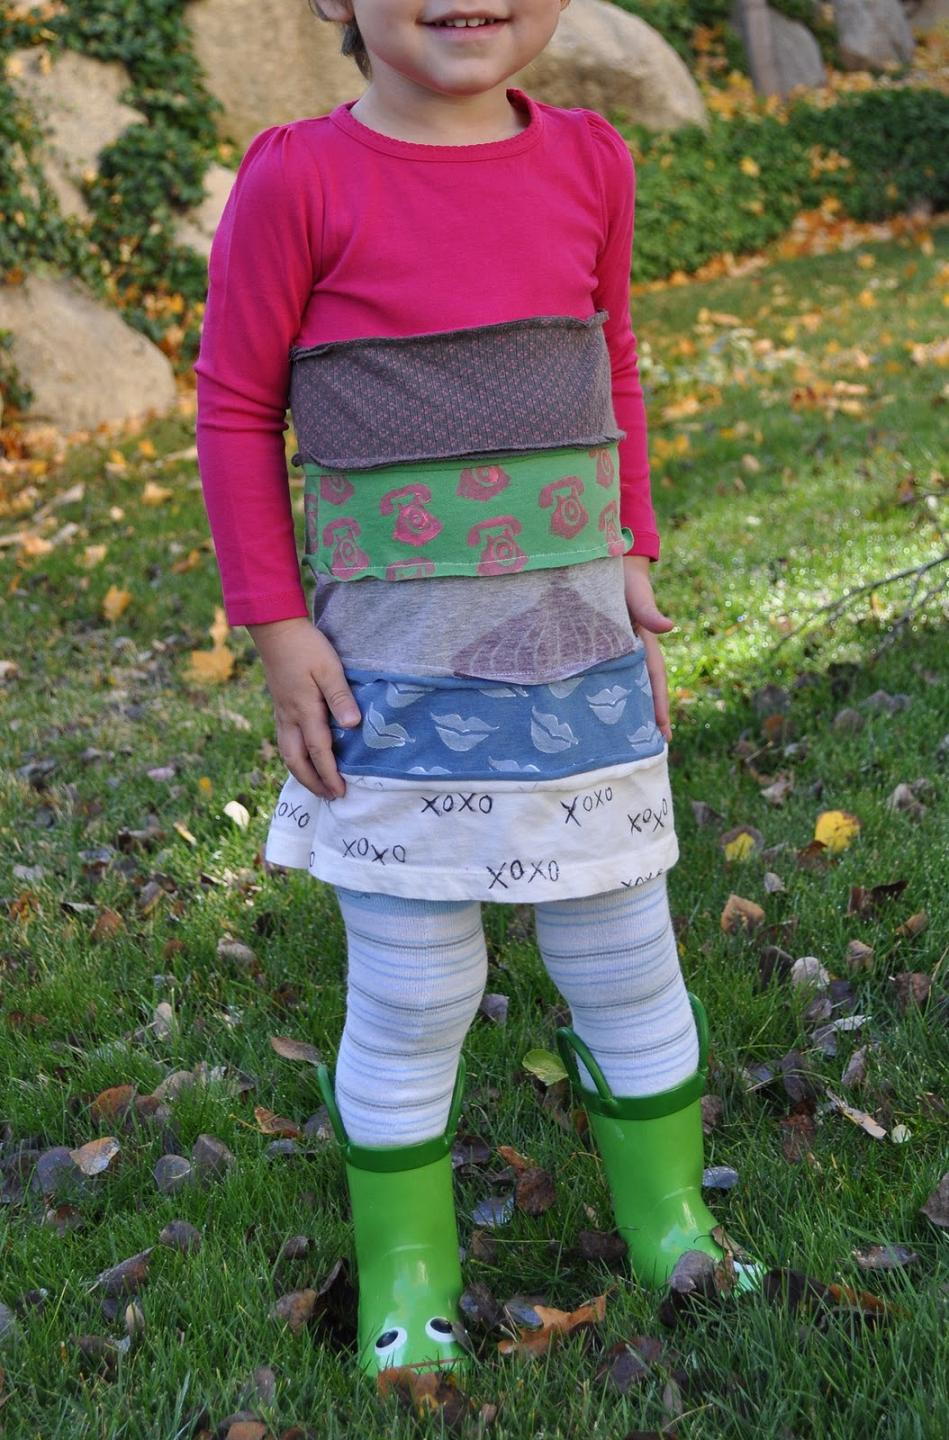 50 Ways to Reuse Your Old T-Shirts - Part 2.